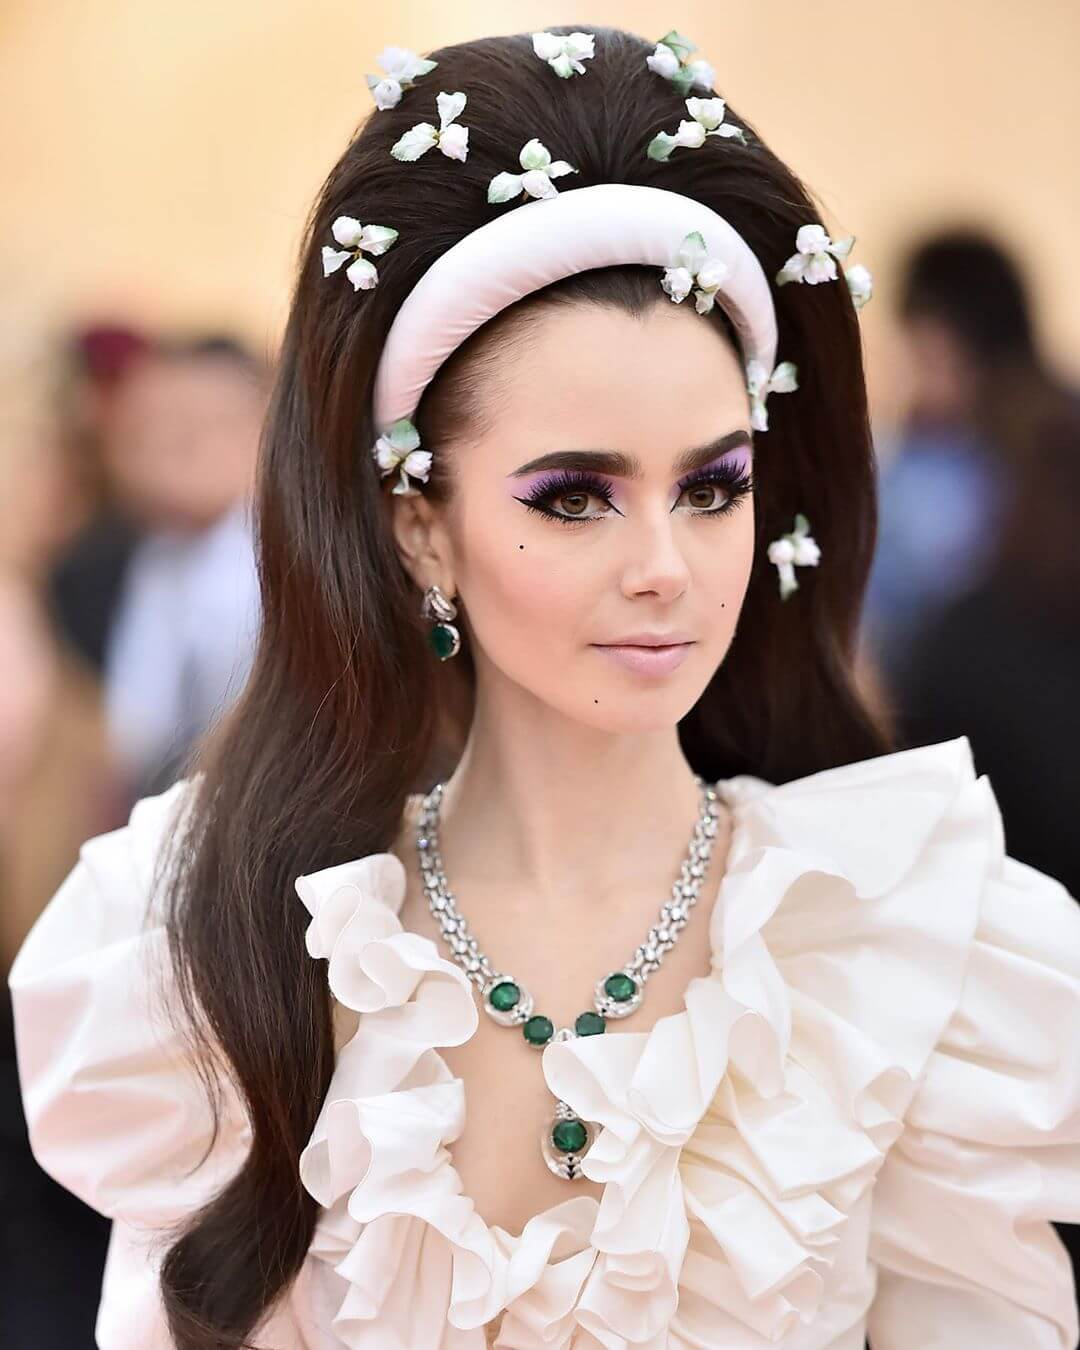 Lily Collins Biography: Age, Husband, Movies, Height, Net Worth & Pictures